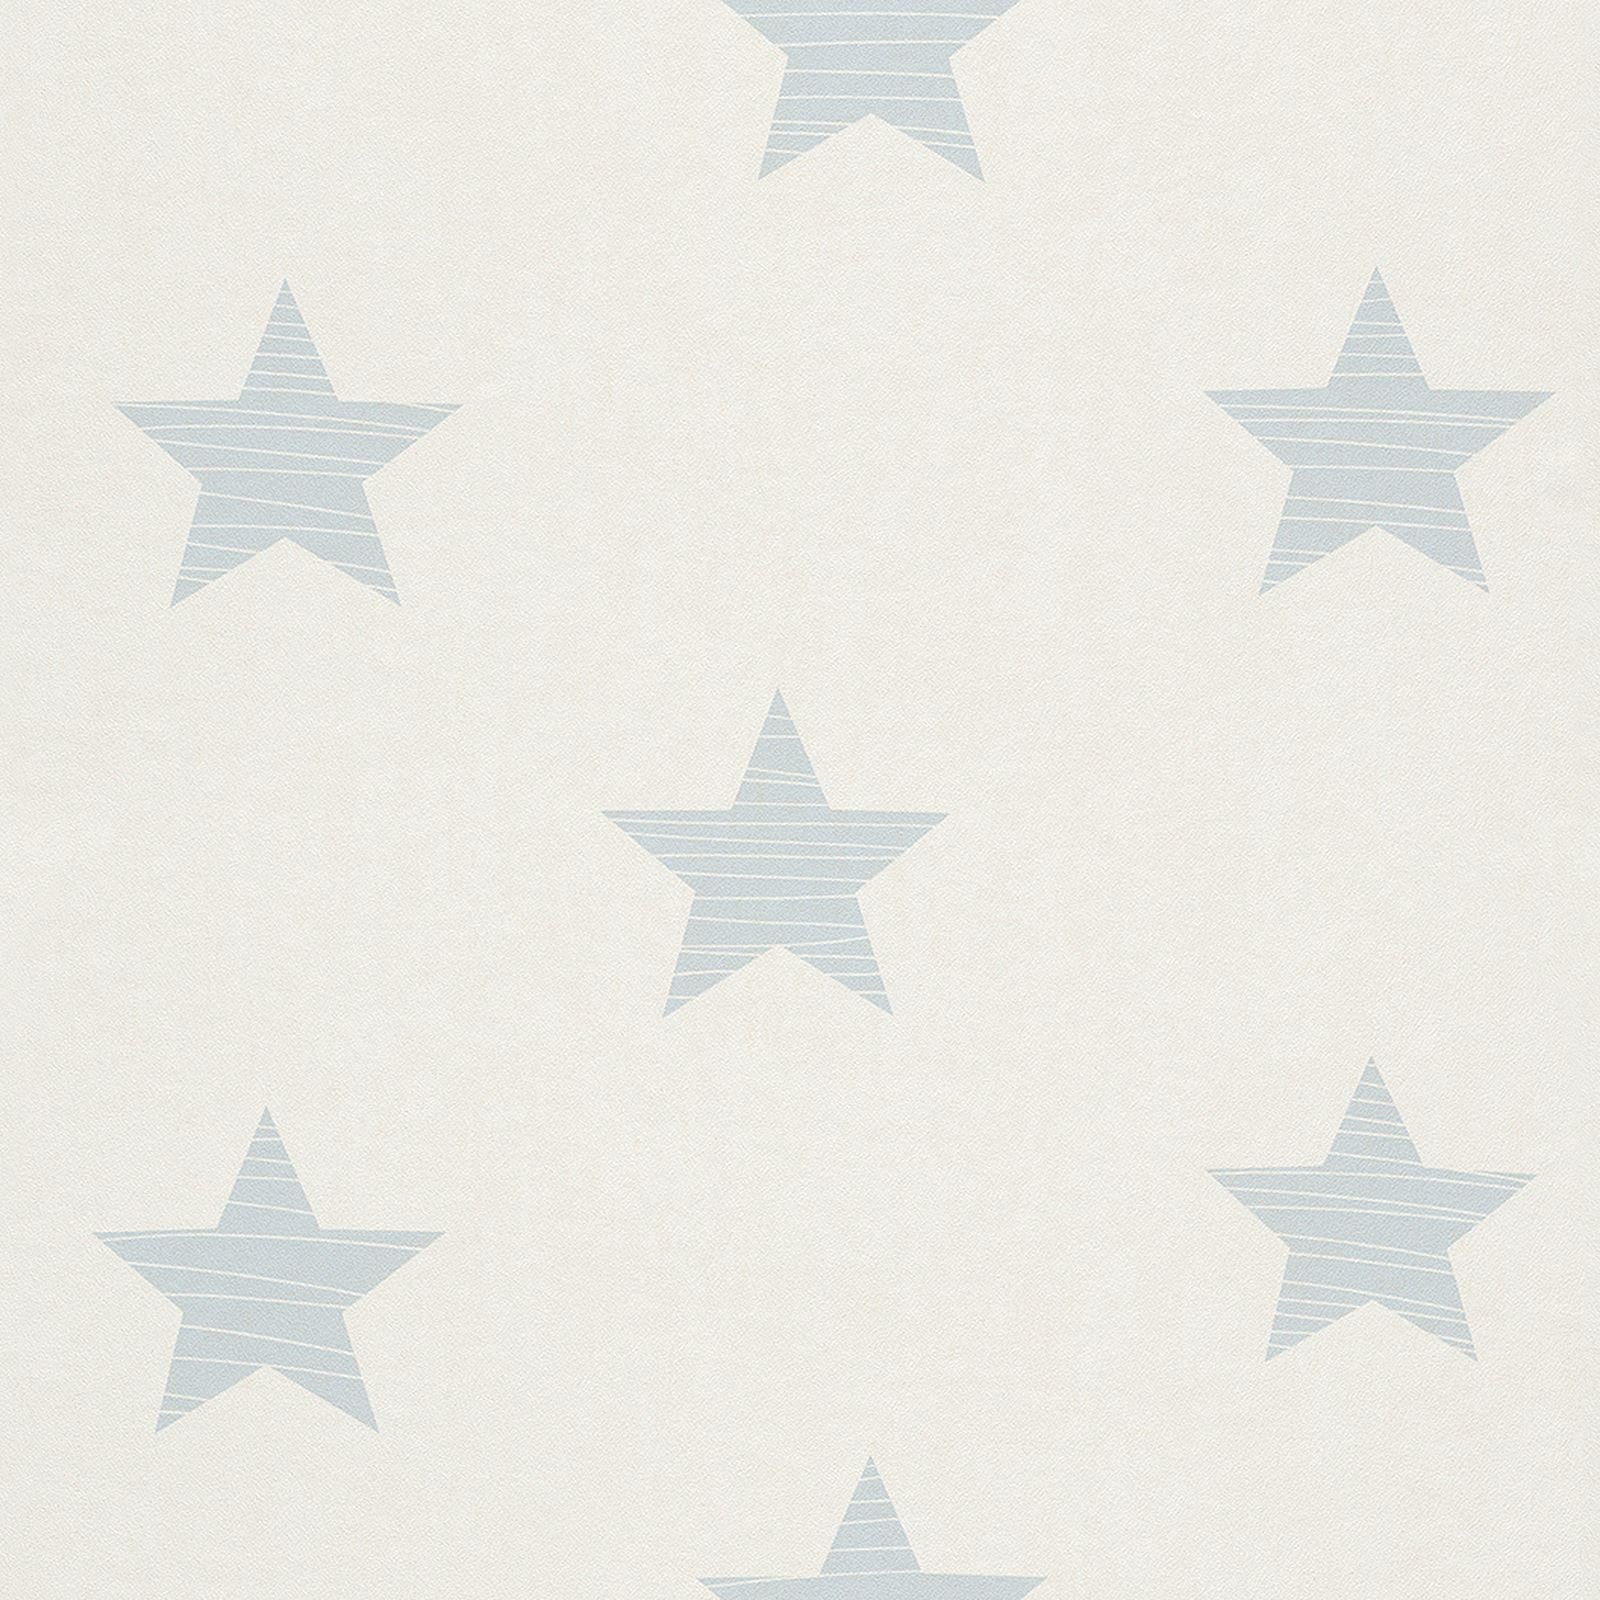 Grey Star Wall Decor : Rasch stars wallpaper wall decor grey blue white and